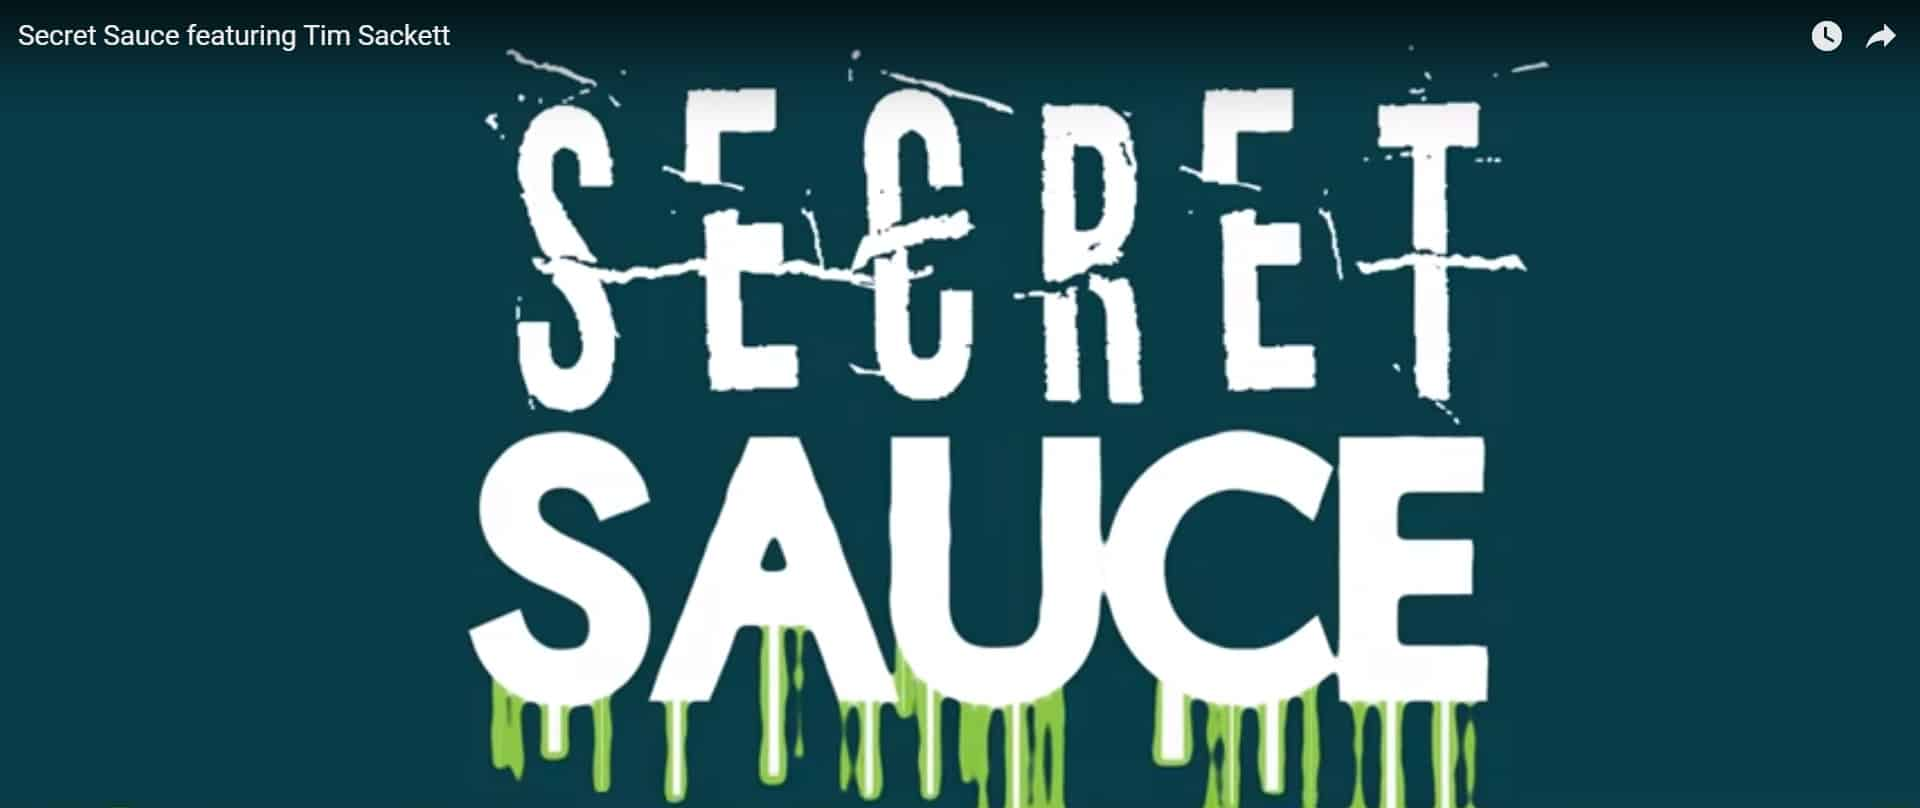 FoT Secret Sauce Blog Header 1